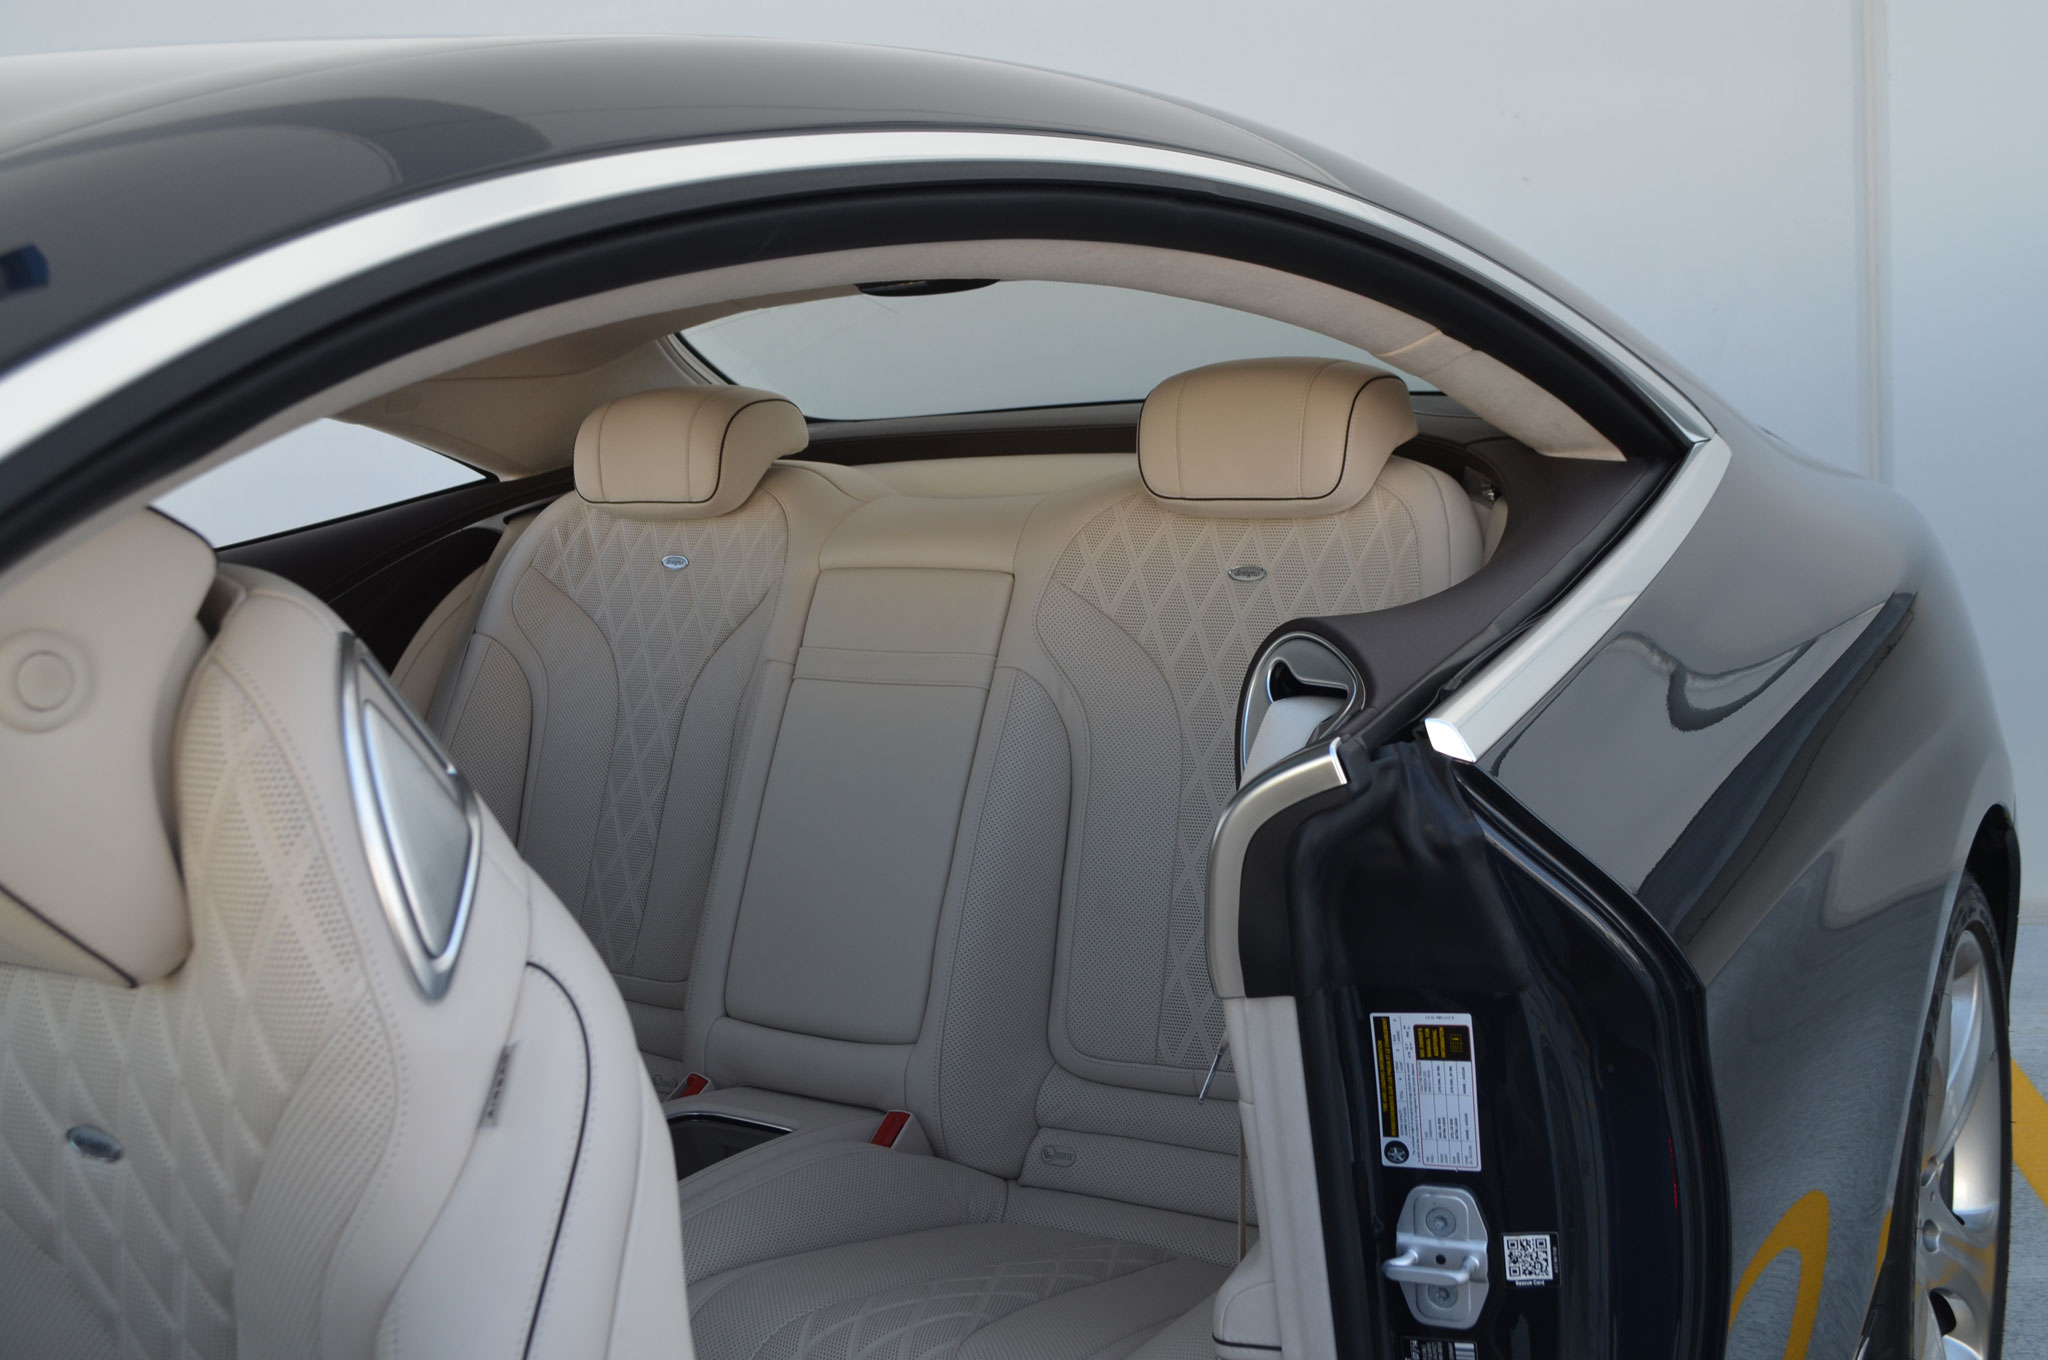 https://st.automobilemag.com/uploads/sites/11/2015/07/2015-Mercedes-Benz-S550-Coupe-rear-seat.jpg